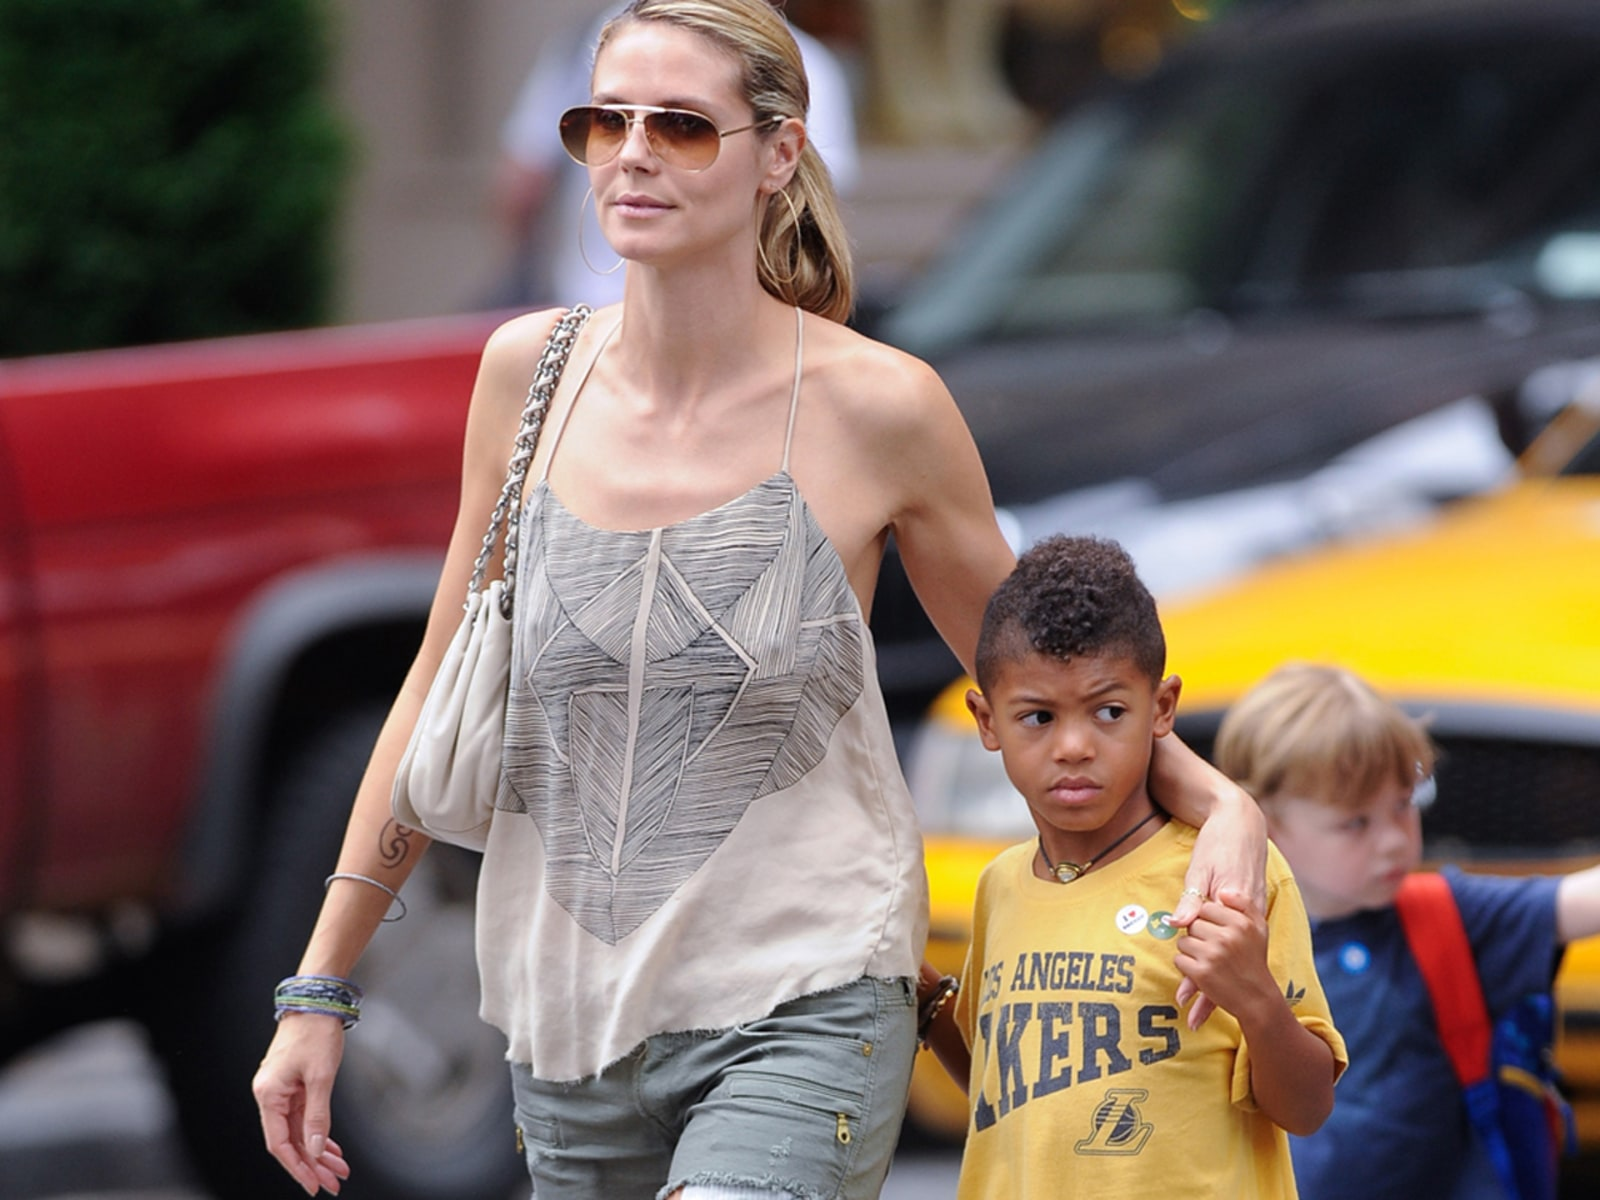 Image: Celebrity Sightings In New York City - June 21, 2011